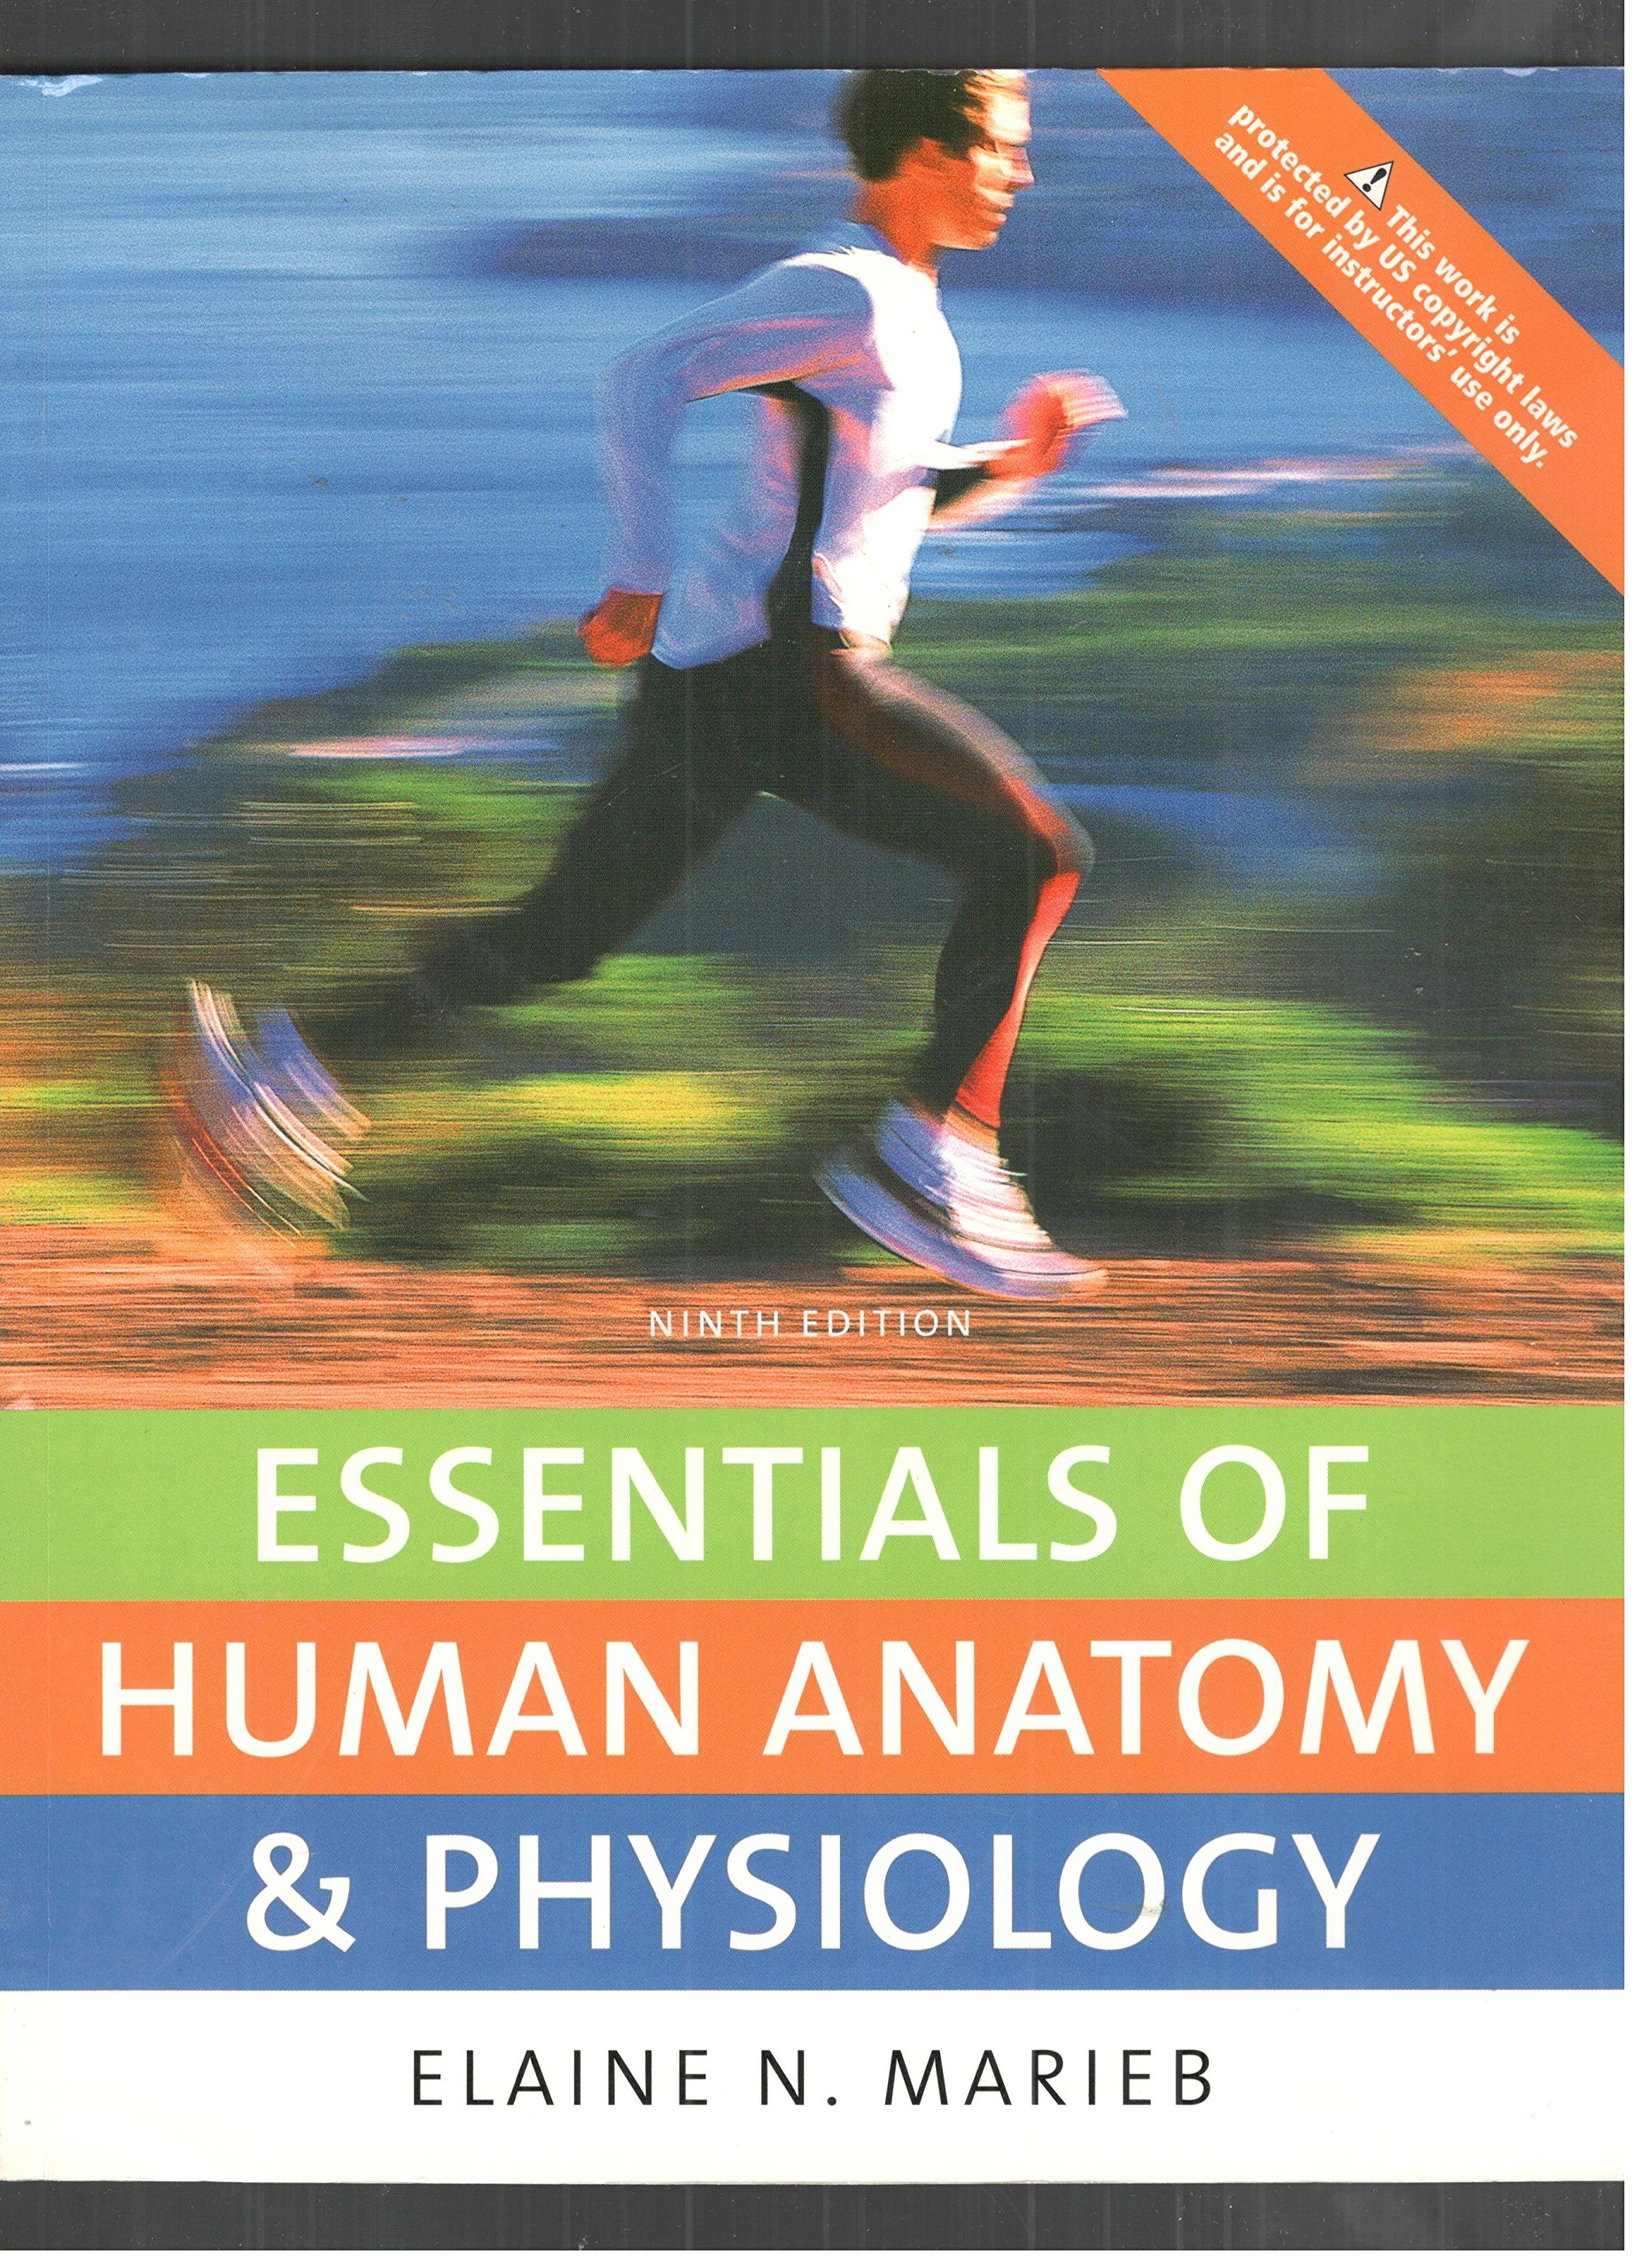 Essentials of Human Anatomy & Physiology P-copy (text Component ...